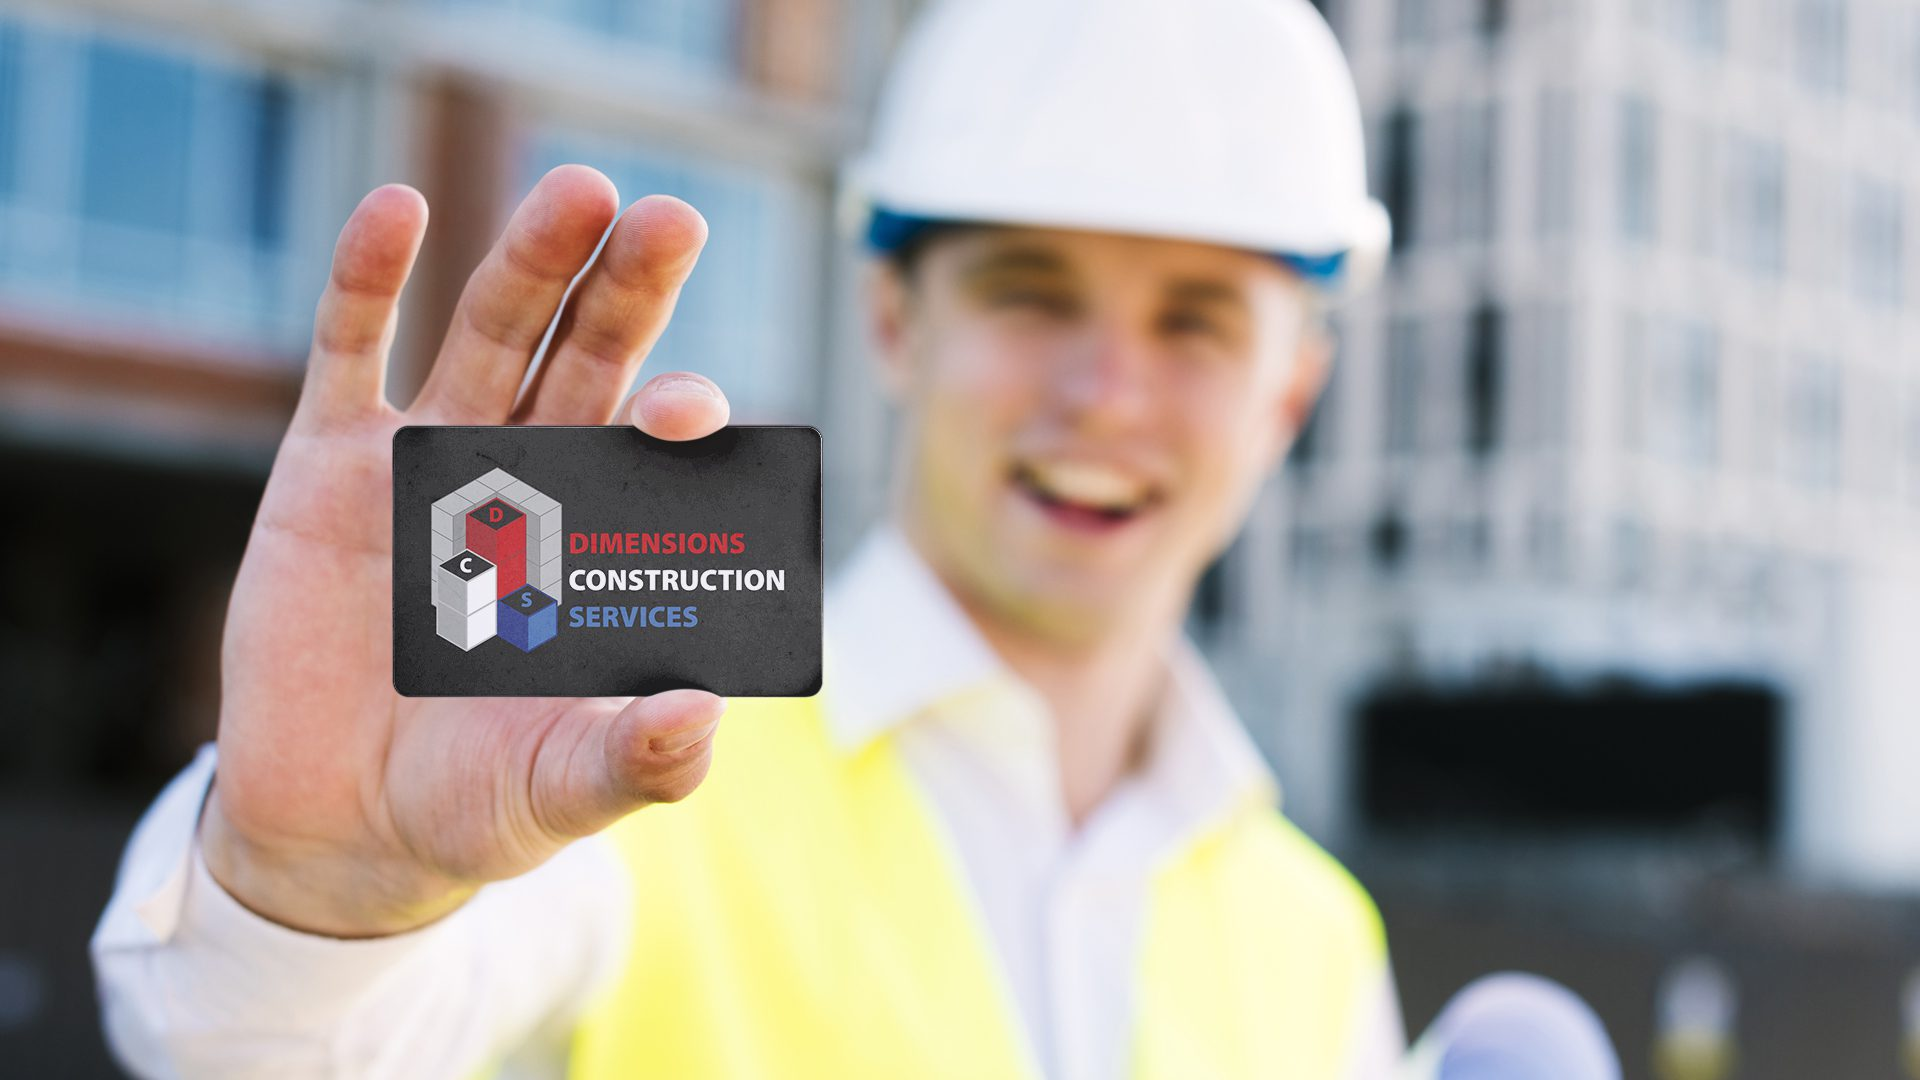 Dimensions Construction Services - Logo Mockup (4)